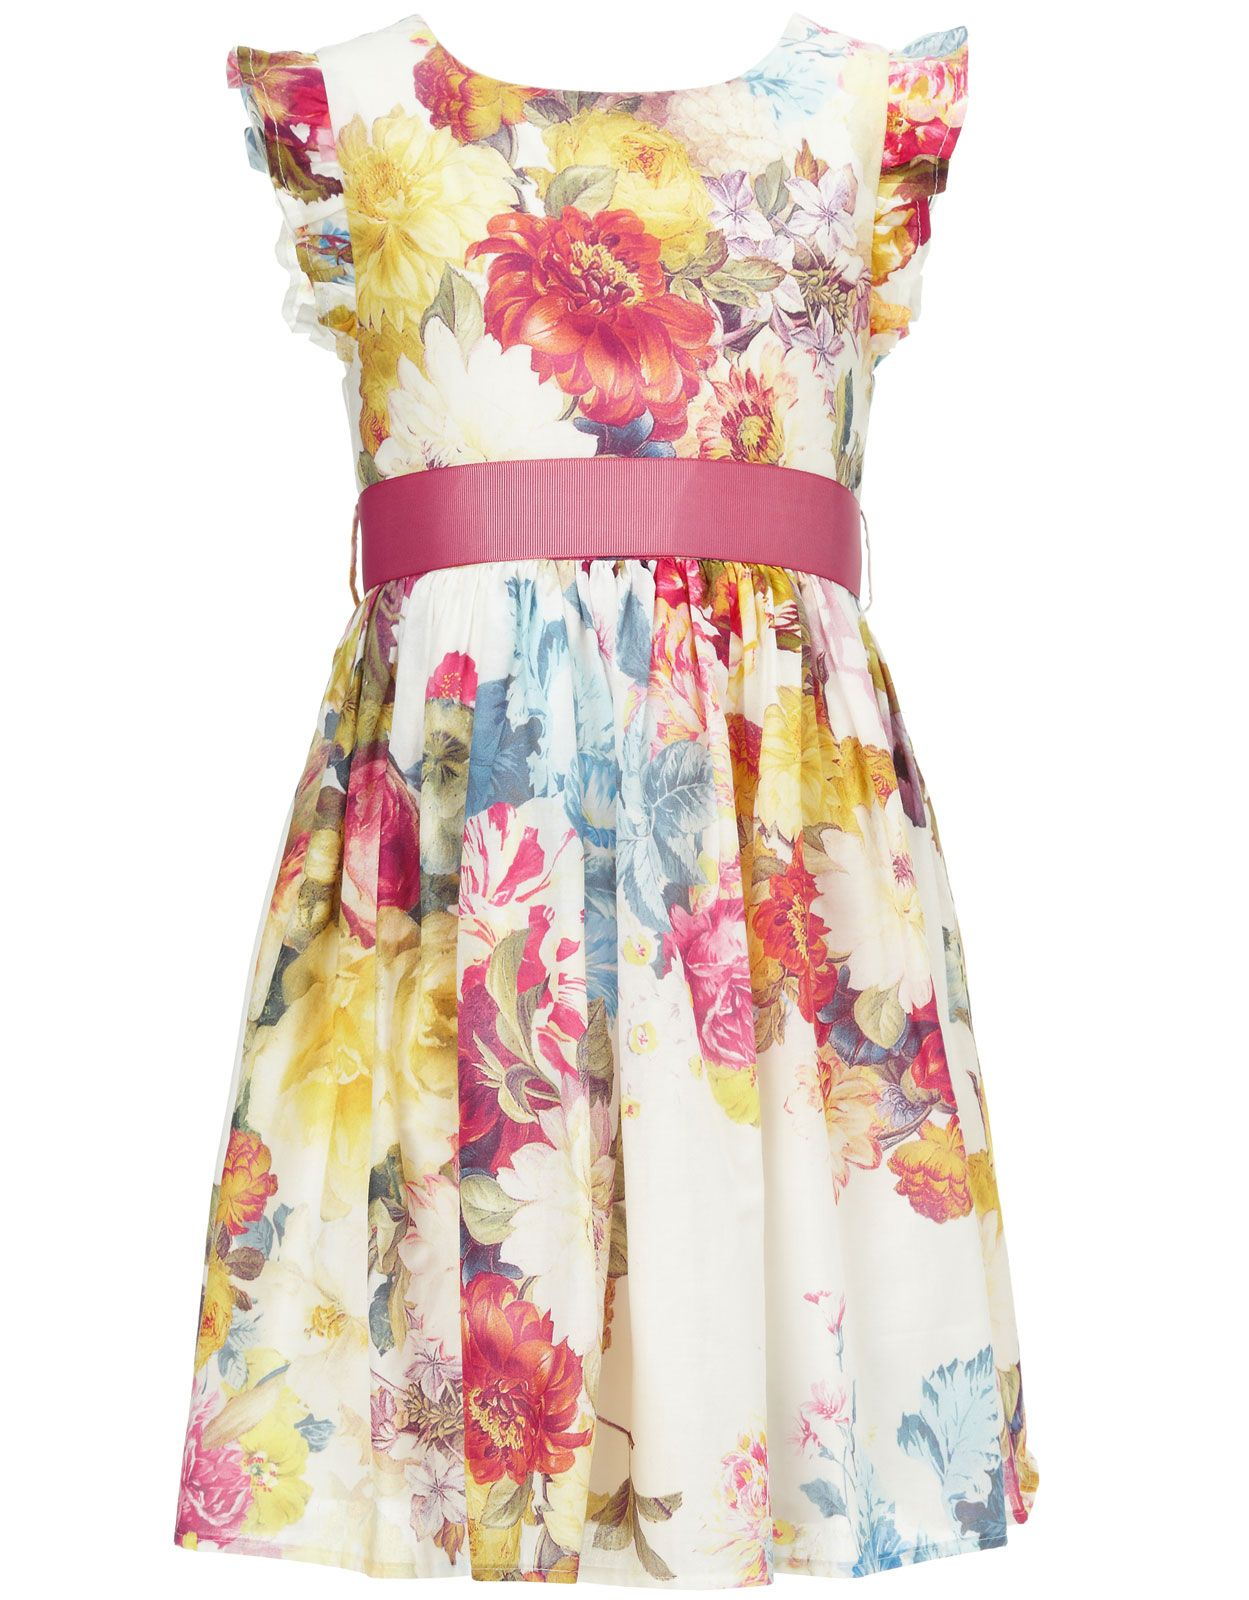 15dc21d5c83f4 Bouquet Dress Monsoon Girls 3-14 Years - AVAILABLE ONLINE NOW ...